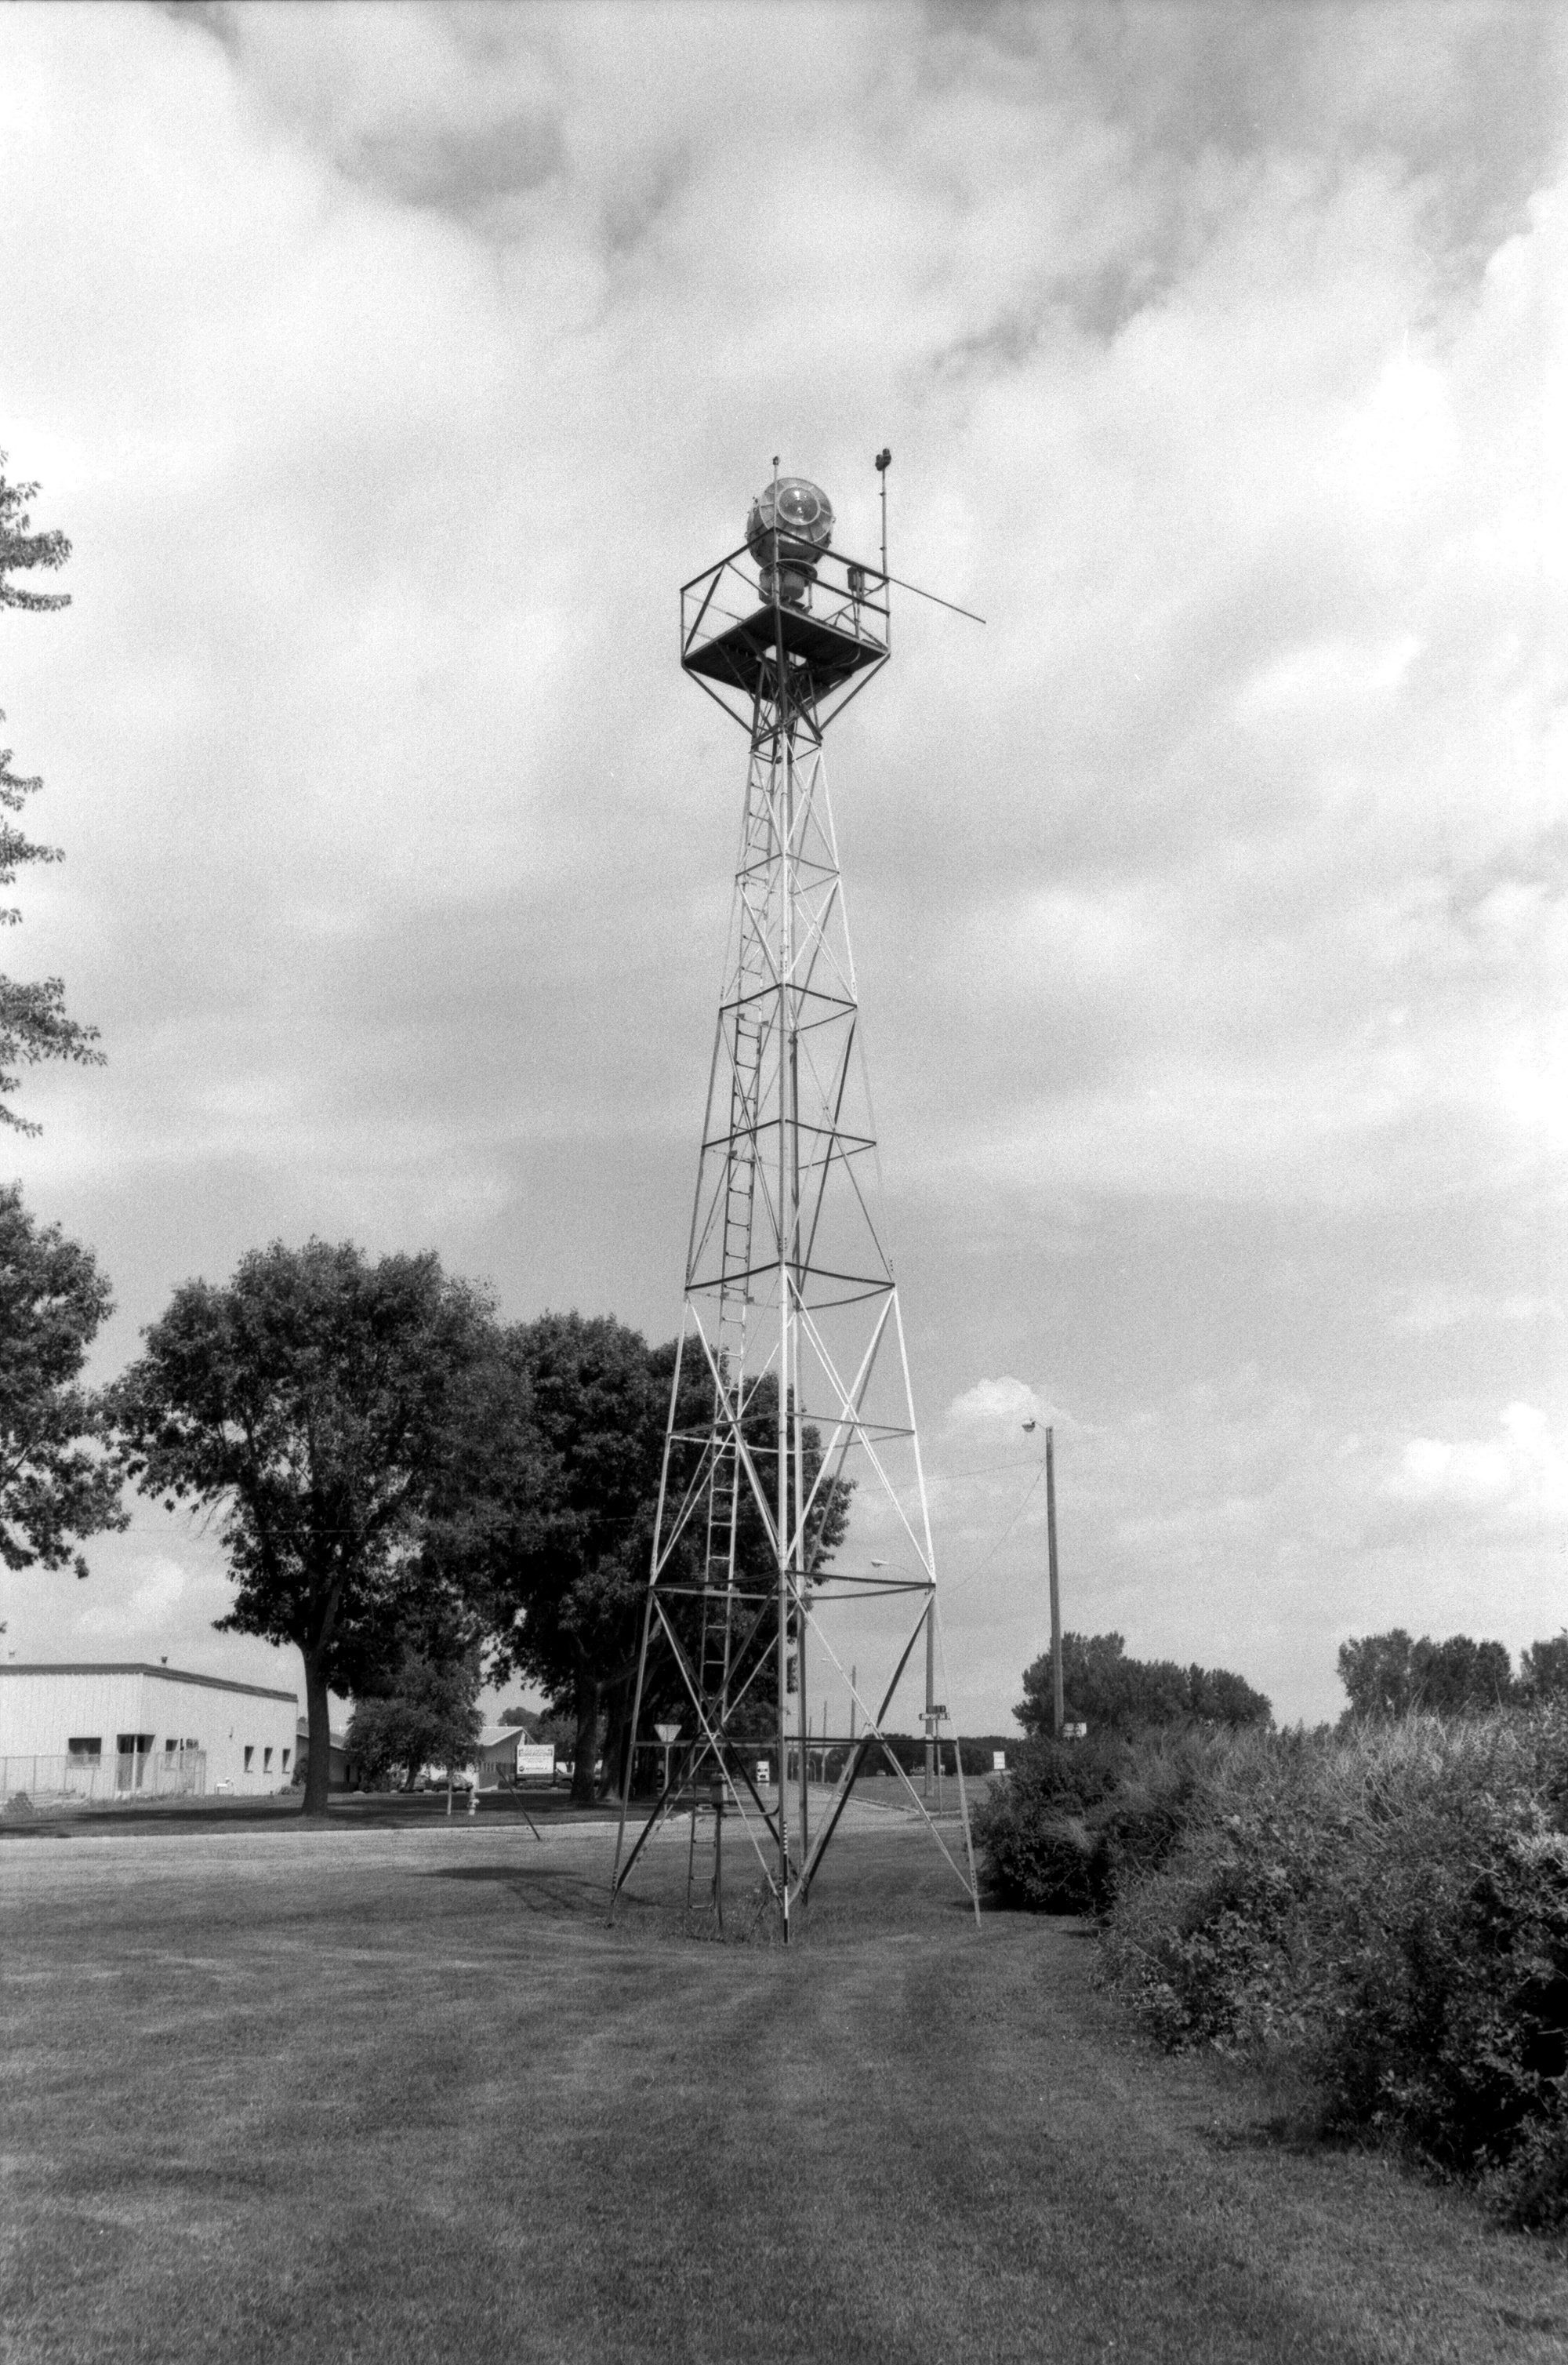 Airport Beacon - MHPR KH-WLC-132-10 (Please credit Daniel R. Pratt and the Minnesota Historic Property Record)